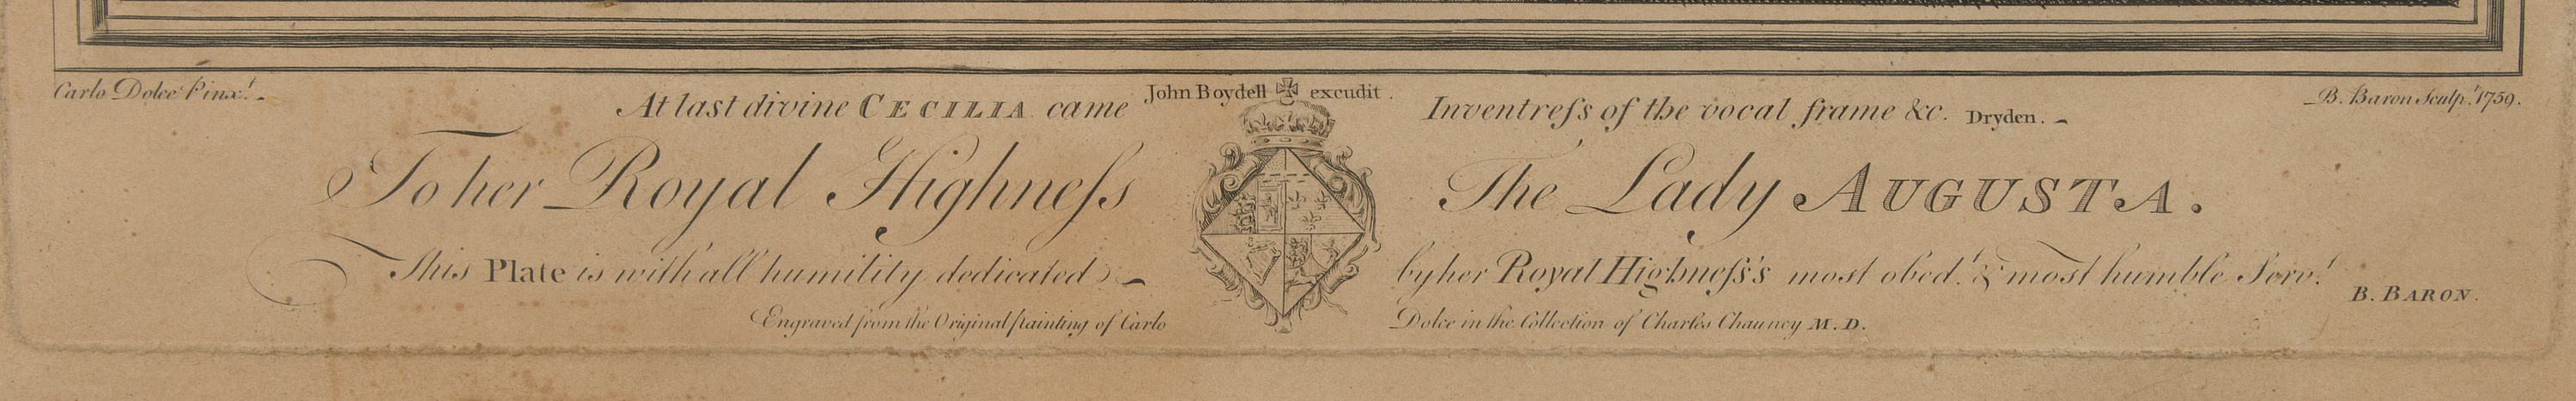 after, copper engraving, John Boydell excudit, B Baron 1759